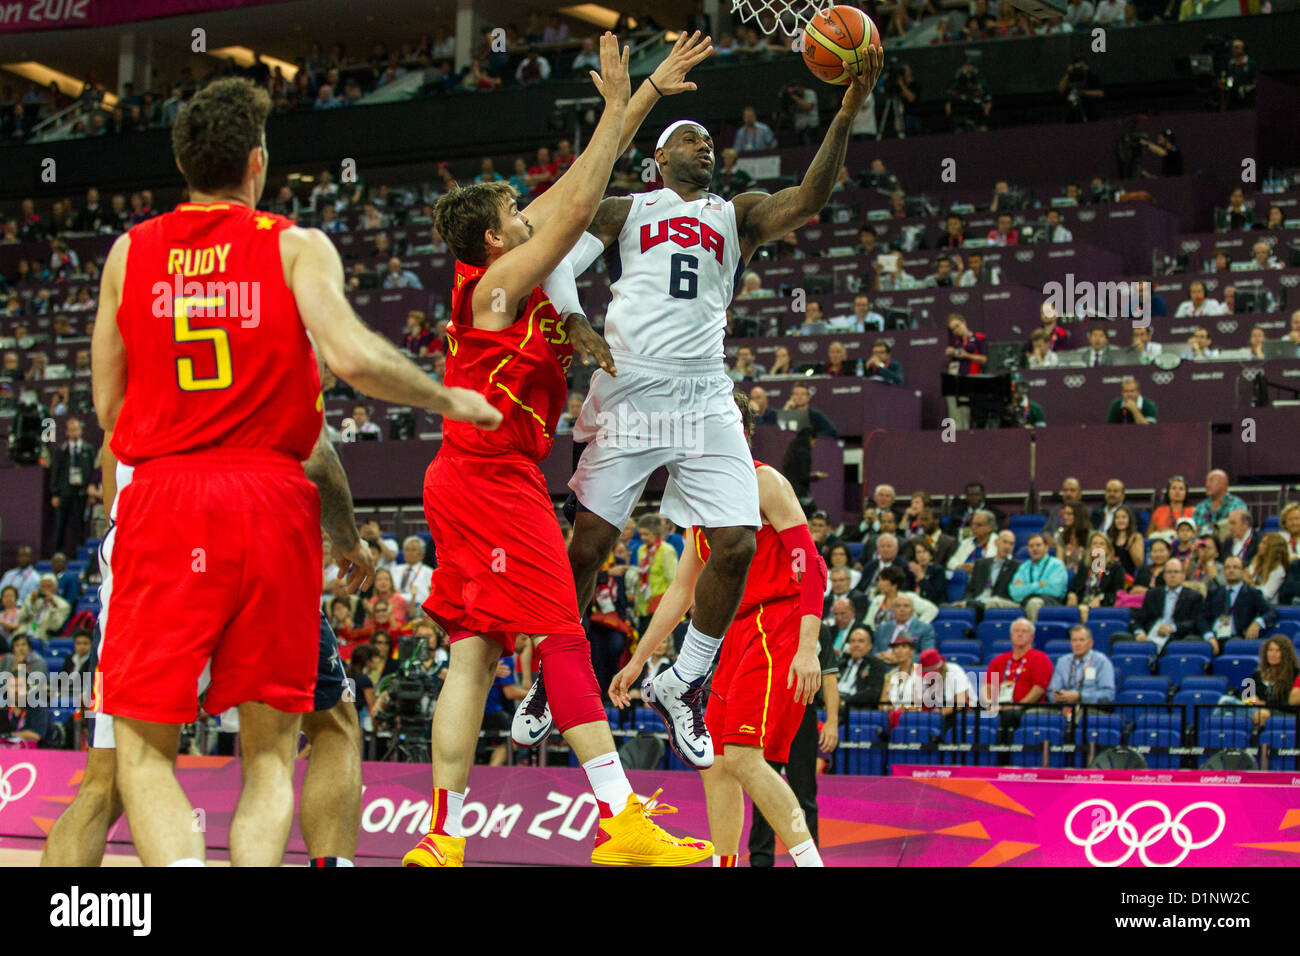 Lebron James (USA) competing in the Gold Medal Men's Basketball Game at the Olympic Summer Games, London 2012 - Stock Image